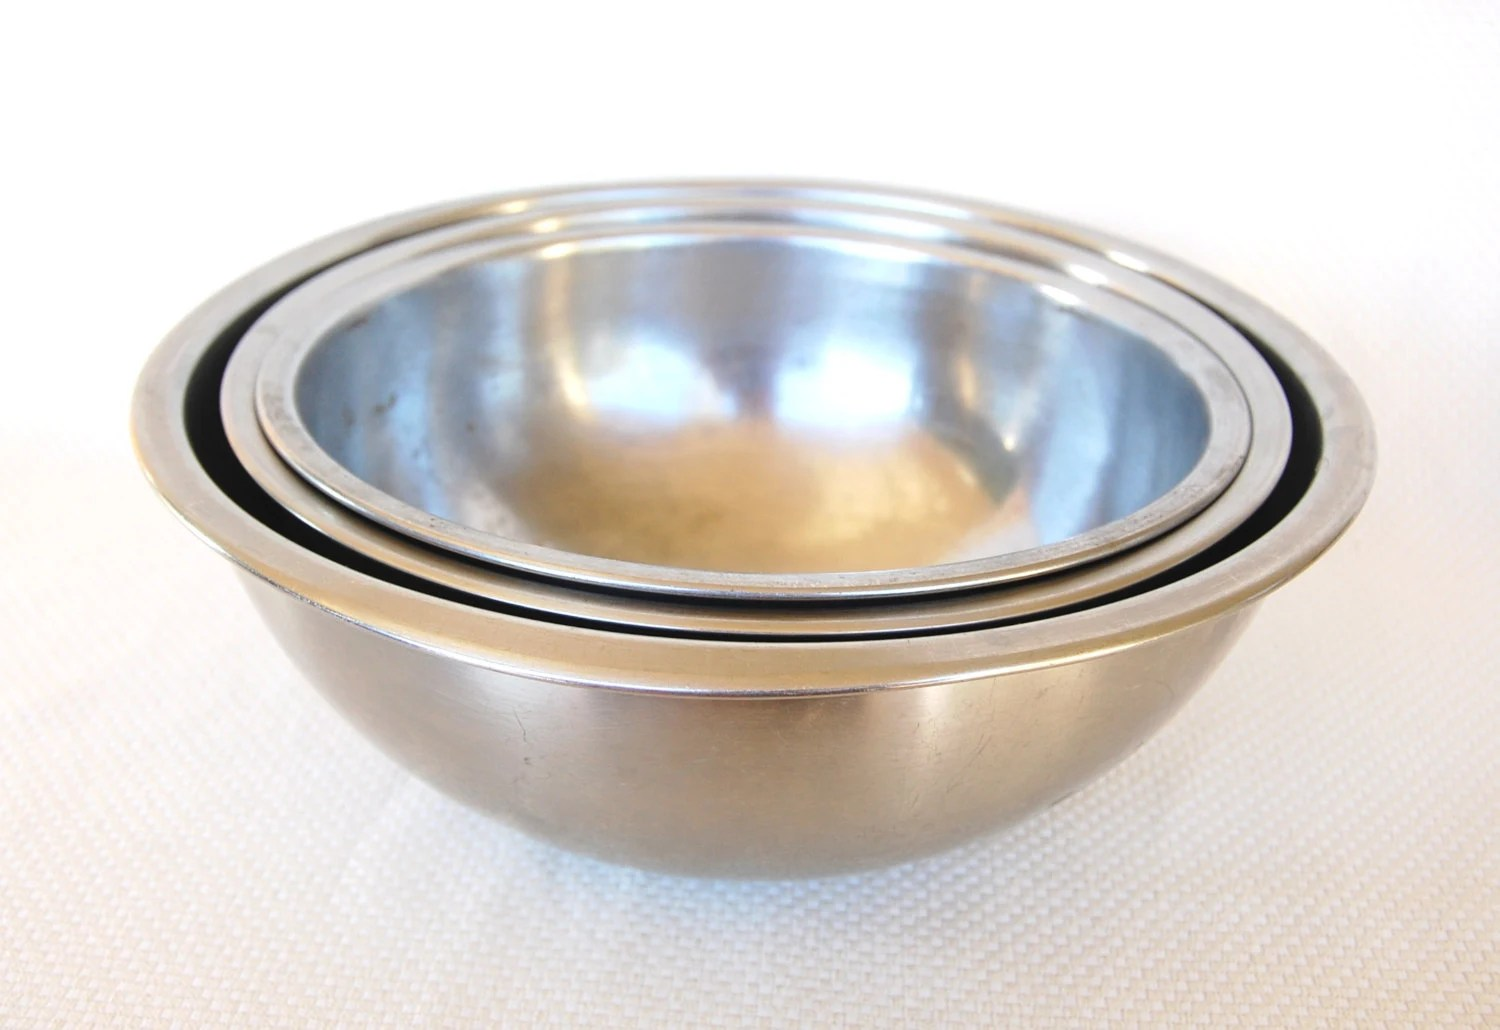 Vollrath Stainless Steel Mixing Bowls